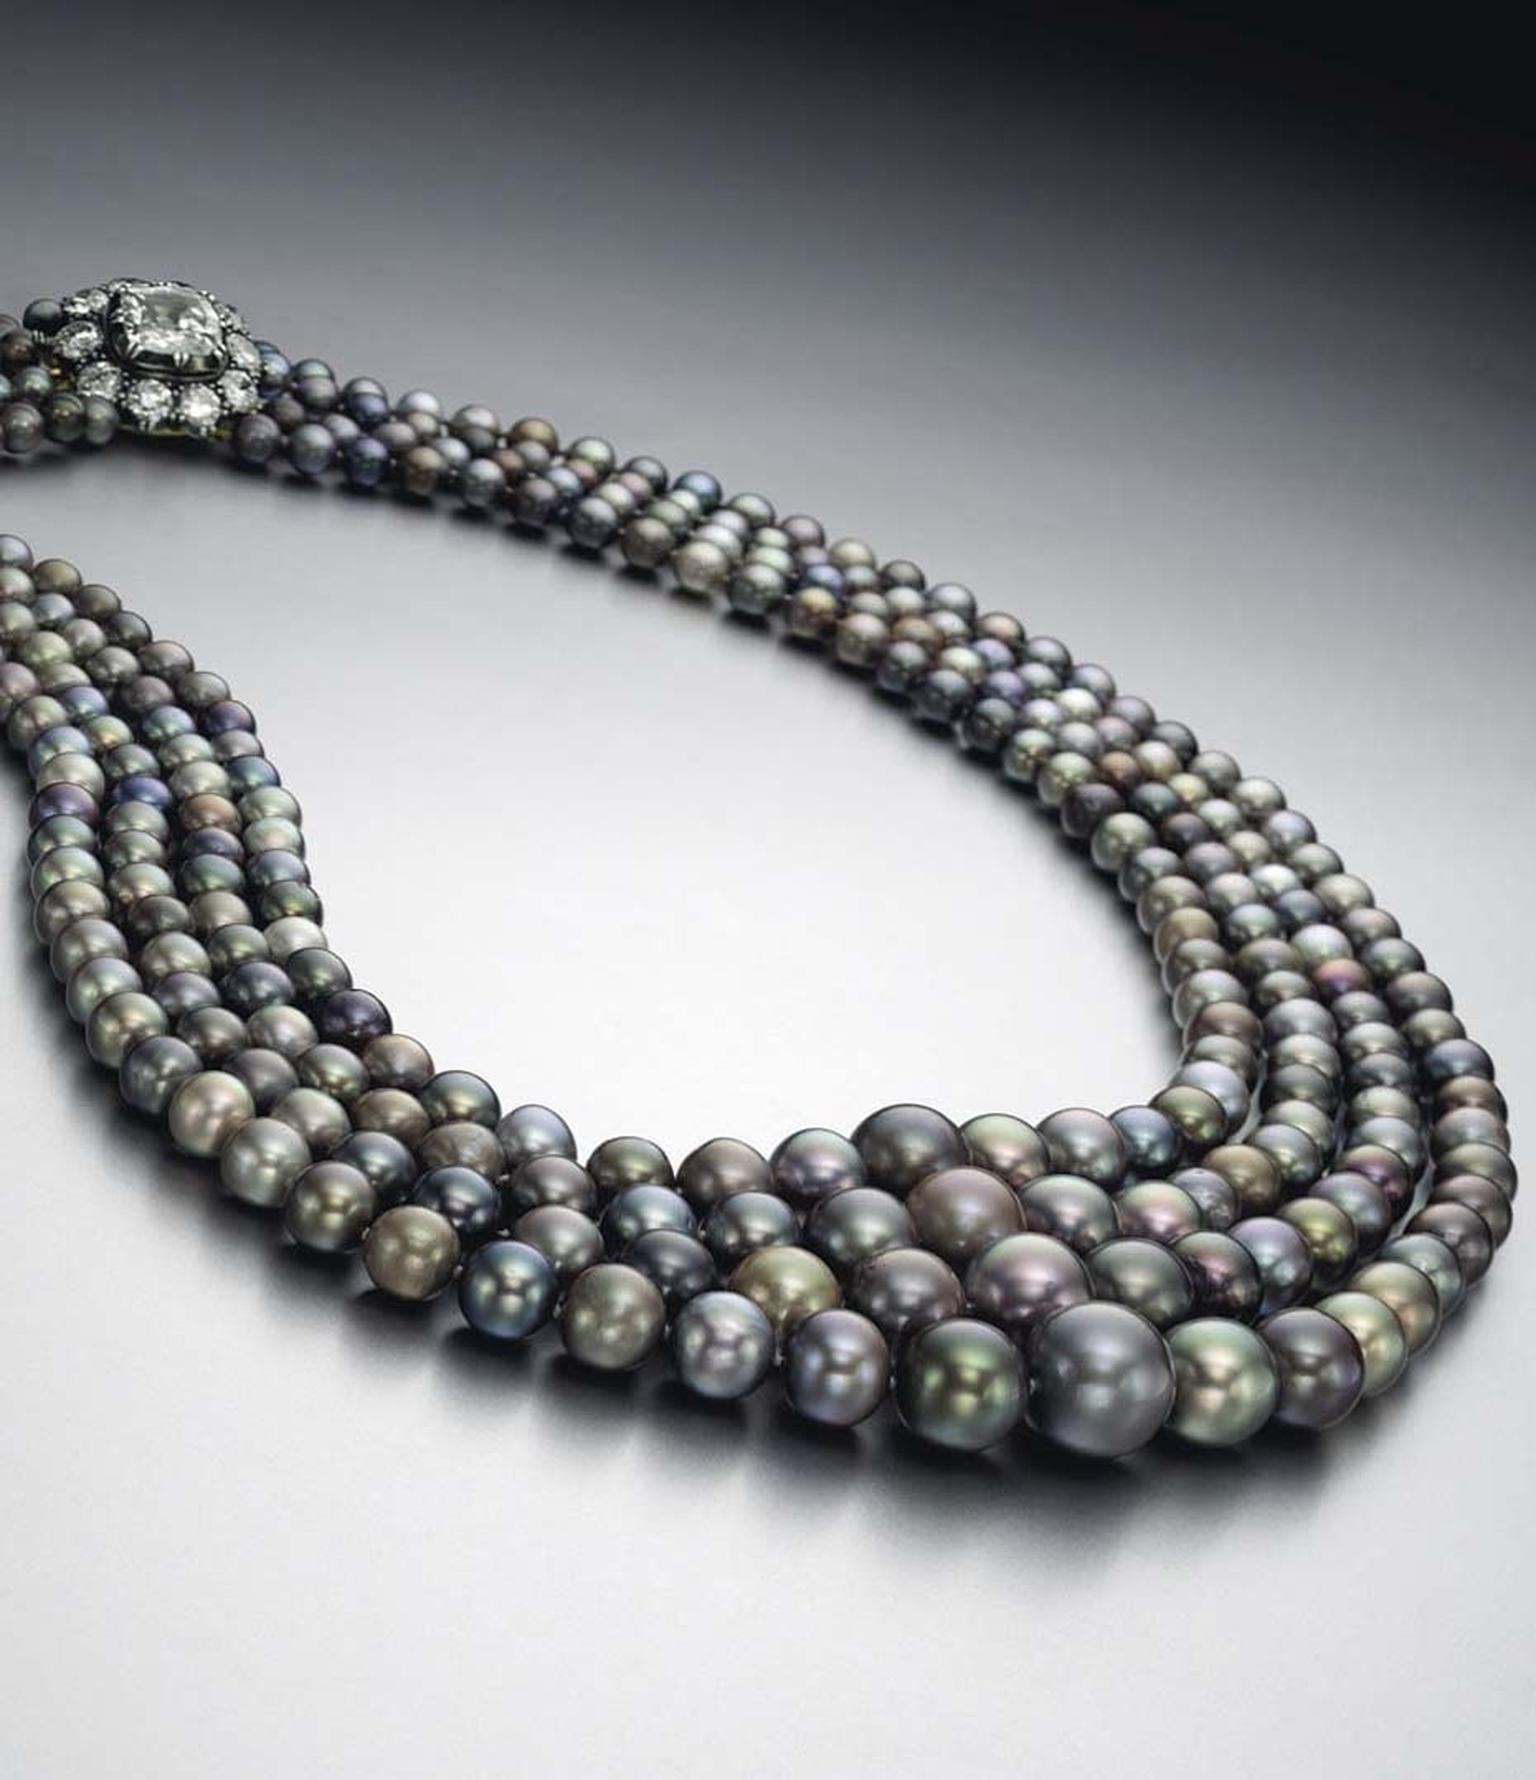 This four-strand natural saltwater pearl necklace set a new world record when it sold for just over $5 million at Christie's New York in 2015